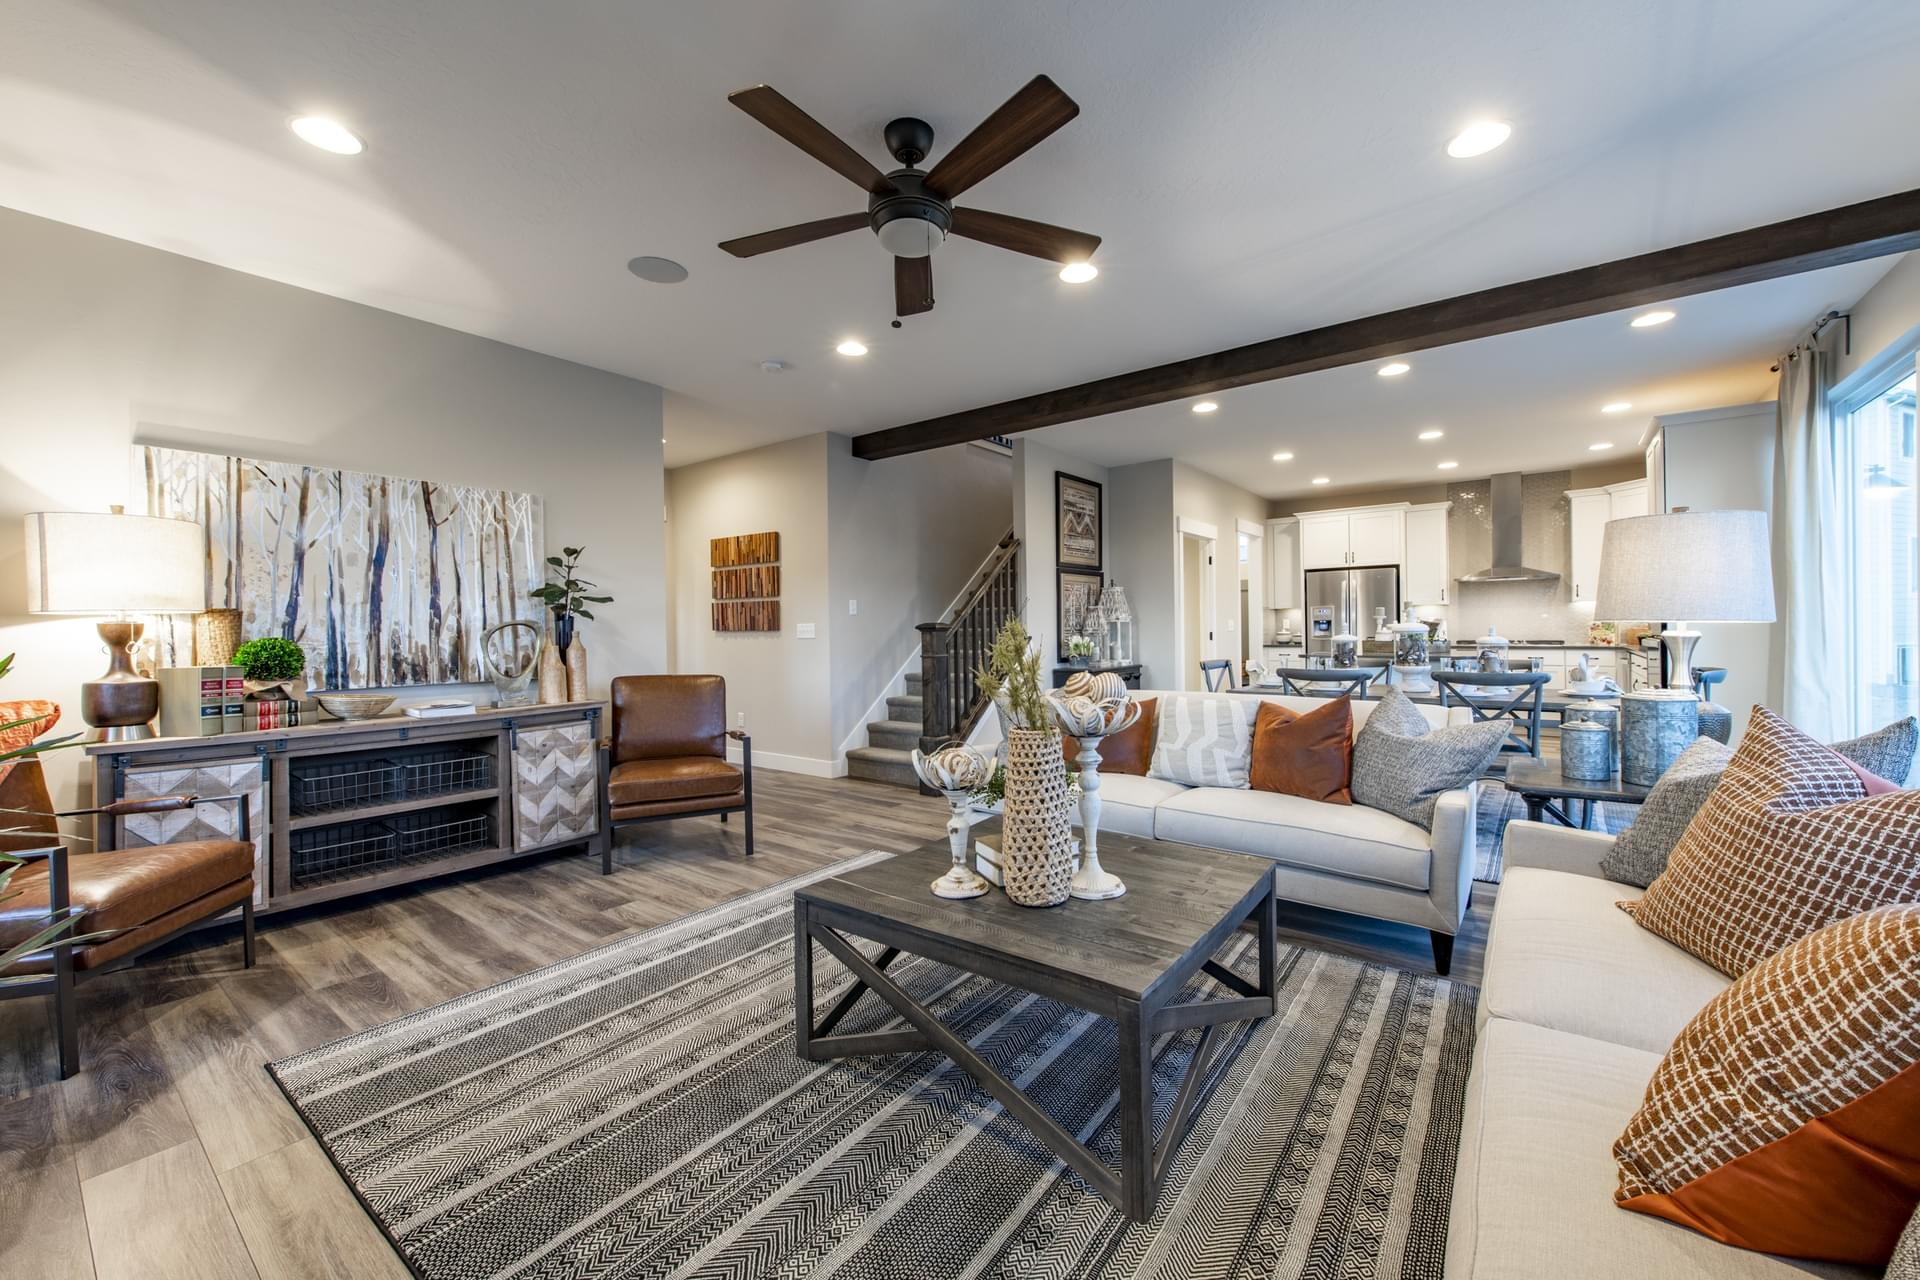 New Home Family Rooms Photos of Fieldstone Homes